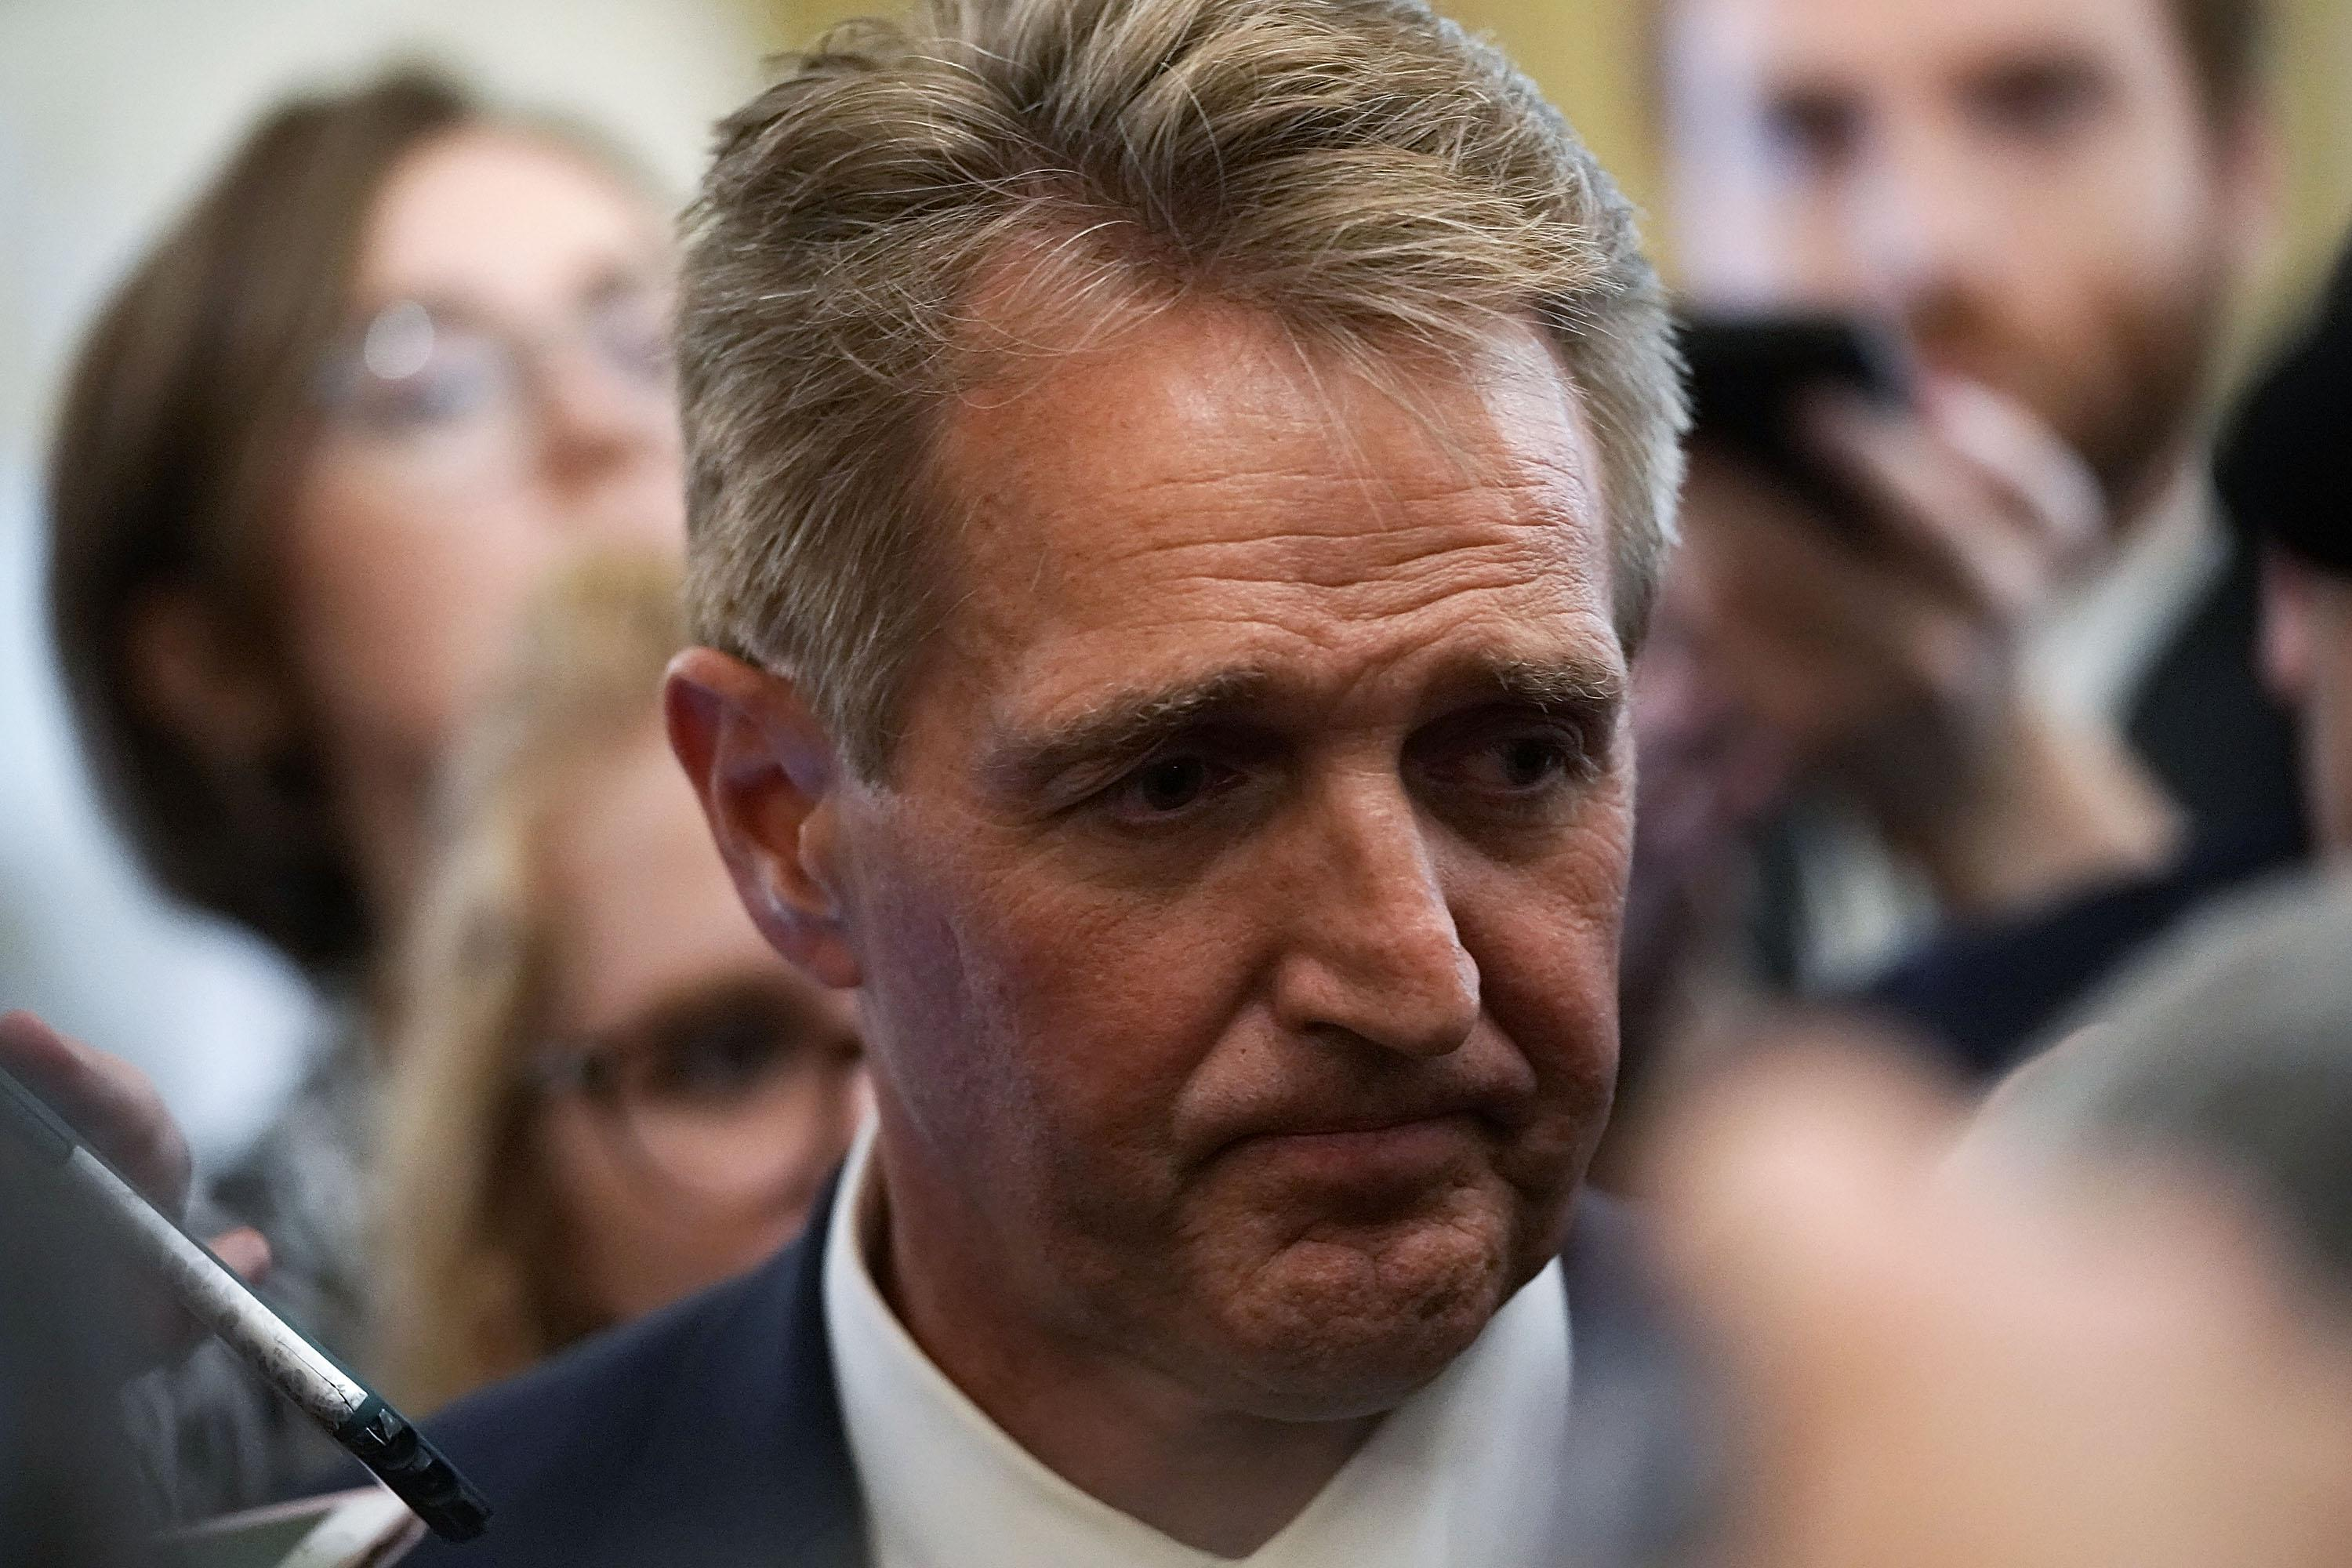 Republican Sen. Jeff Flake speaks to the press on September 28, 2018 at the U.S. Capitol in Washington, D.C.